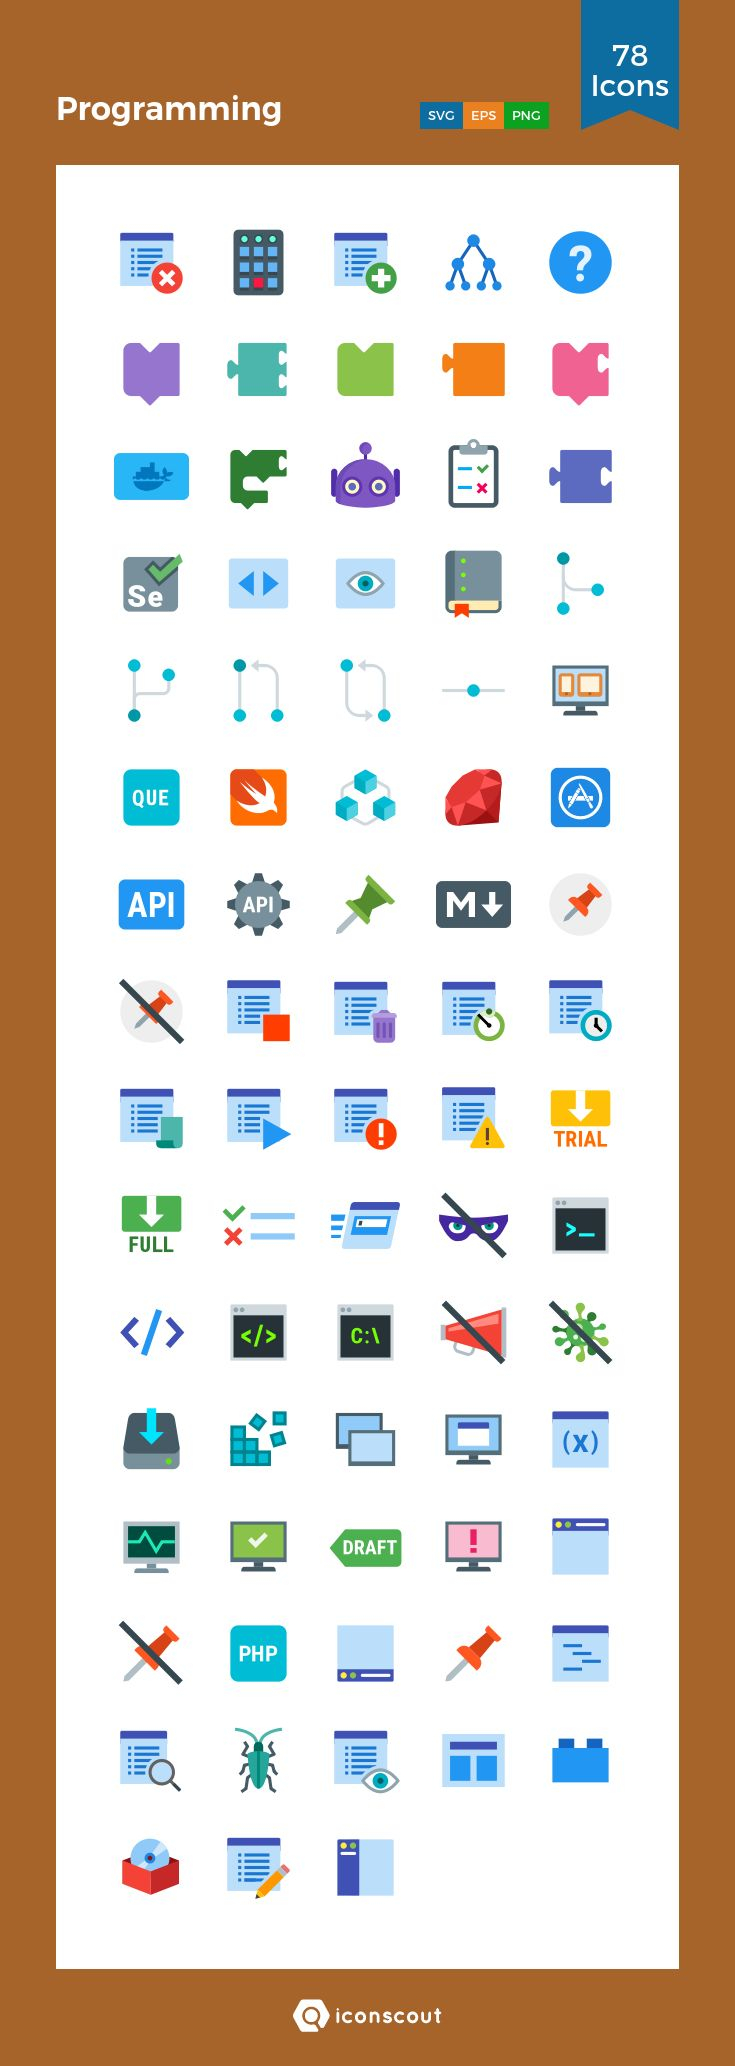 Programming  Icon Pack - 78 Flat Icons